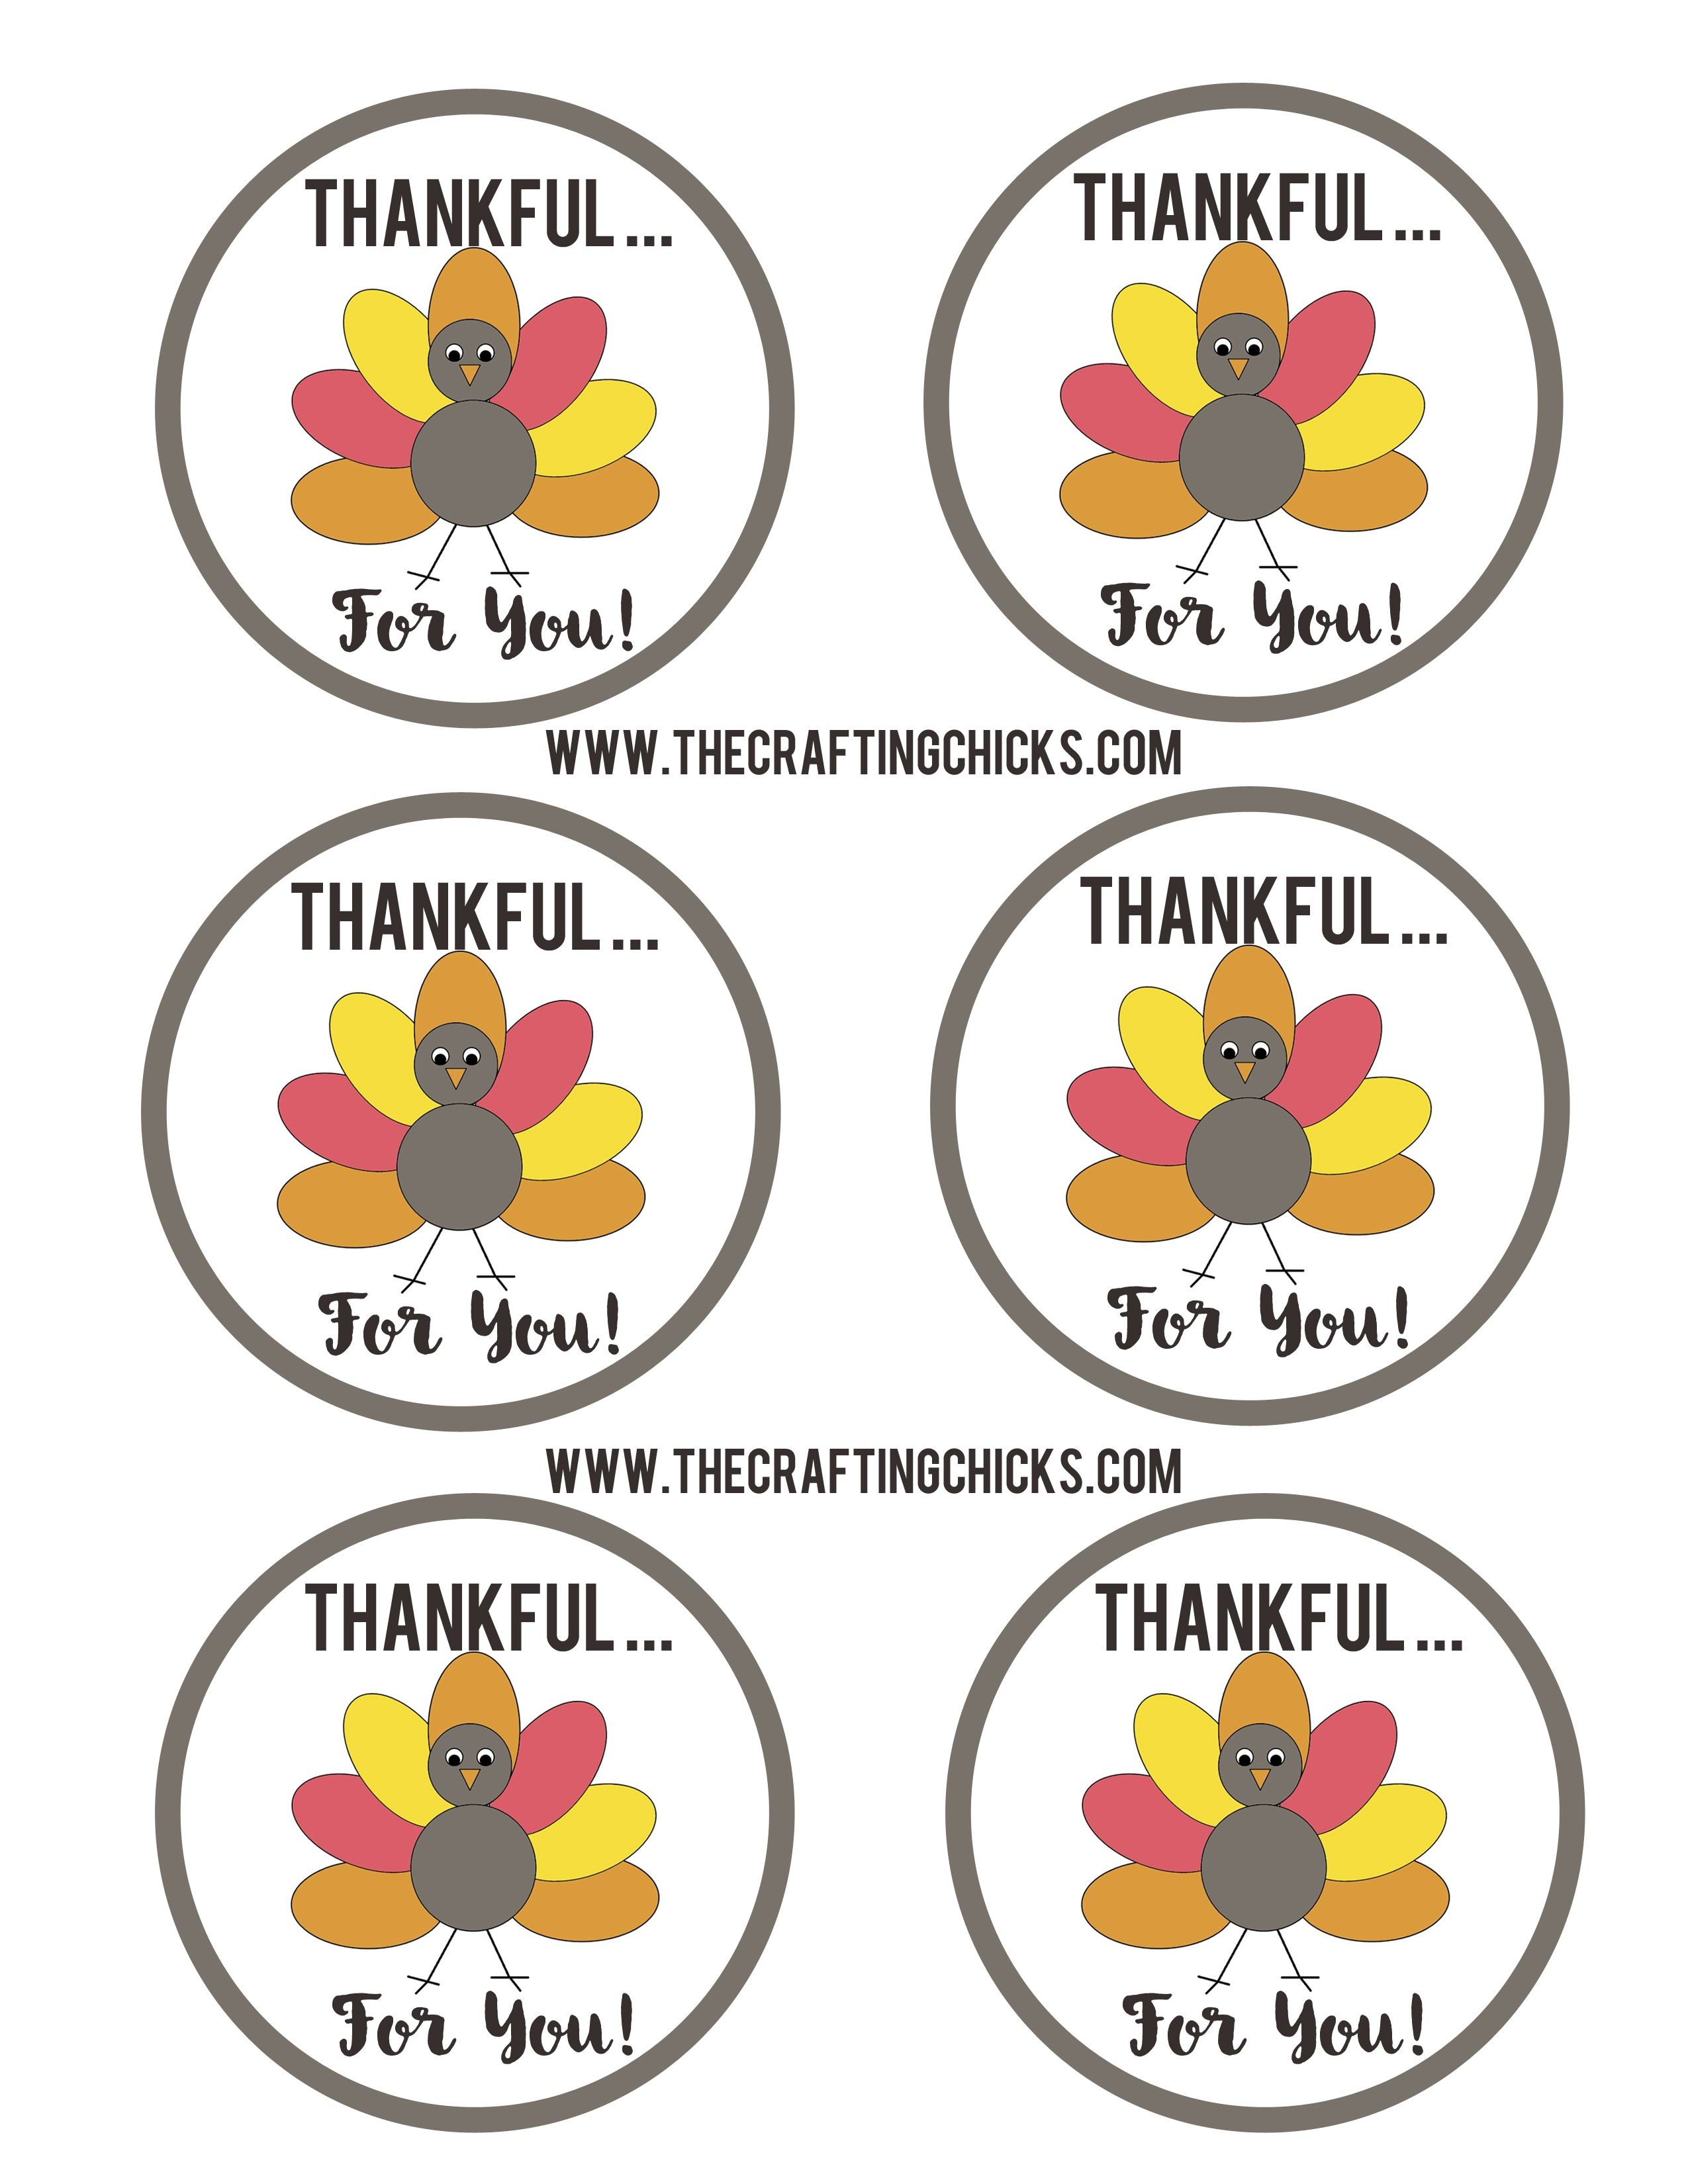 Pinstephanie Pirkle On School | Free Thanksgiving Printables - Thankful For You Free Printable Tags